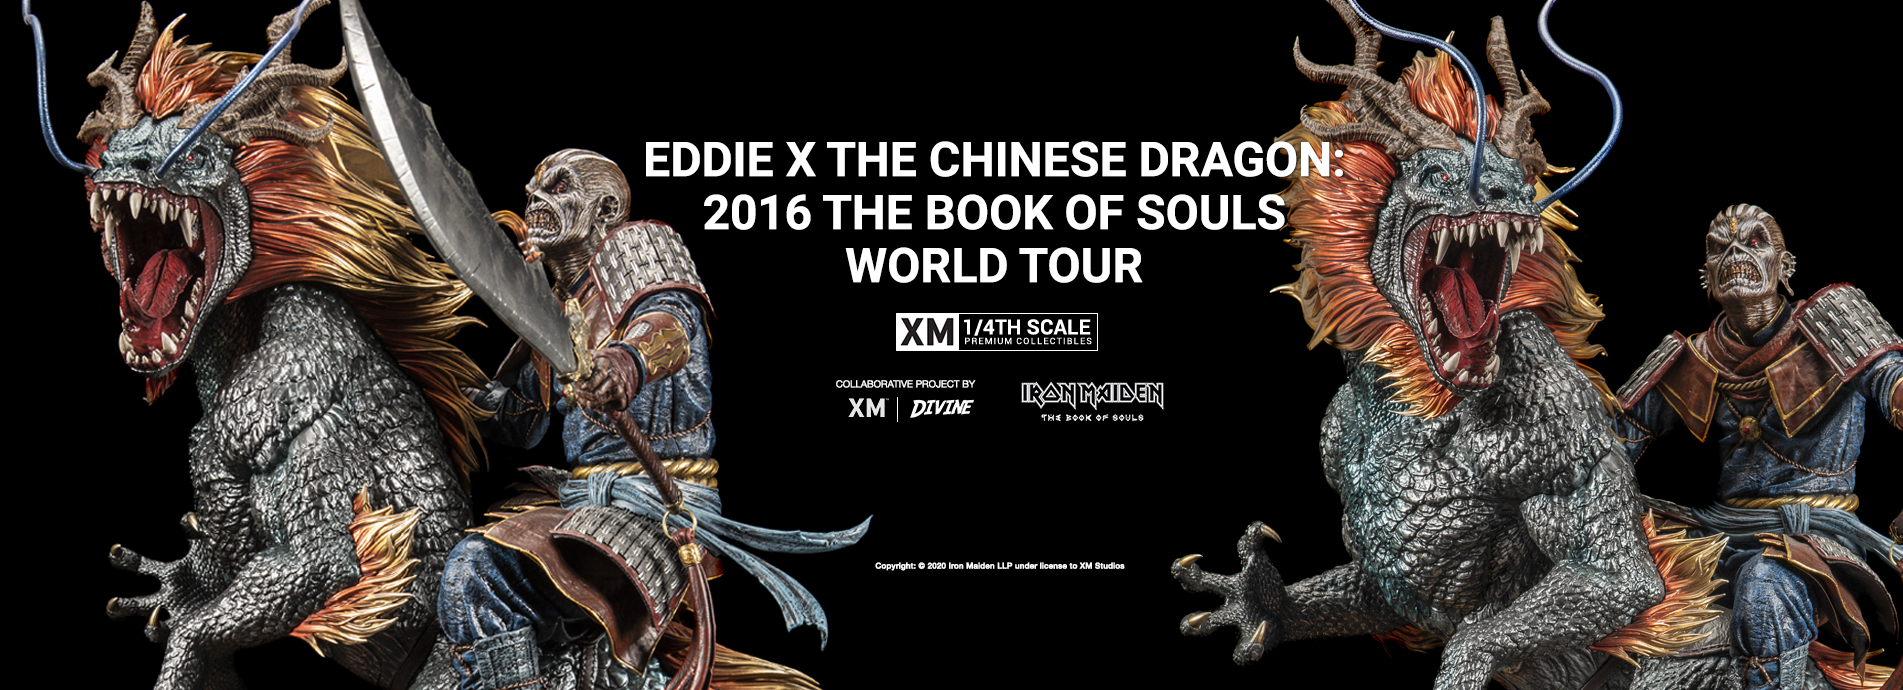 Eddie X The Chinese Dragon 2016 The Book Of Souls World Tour